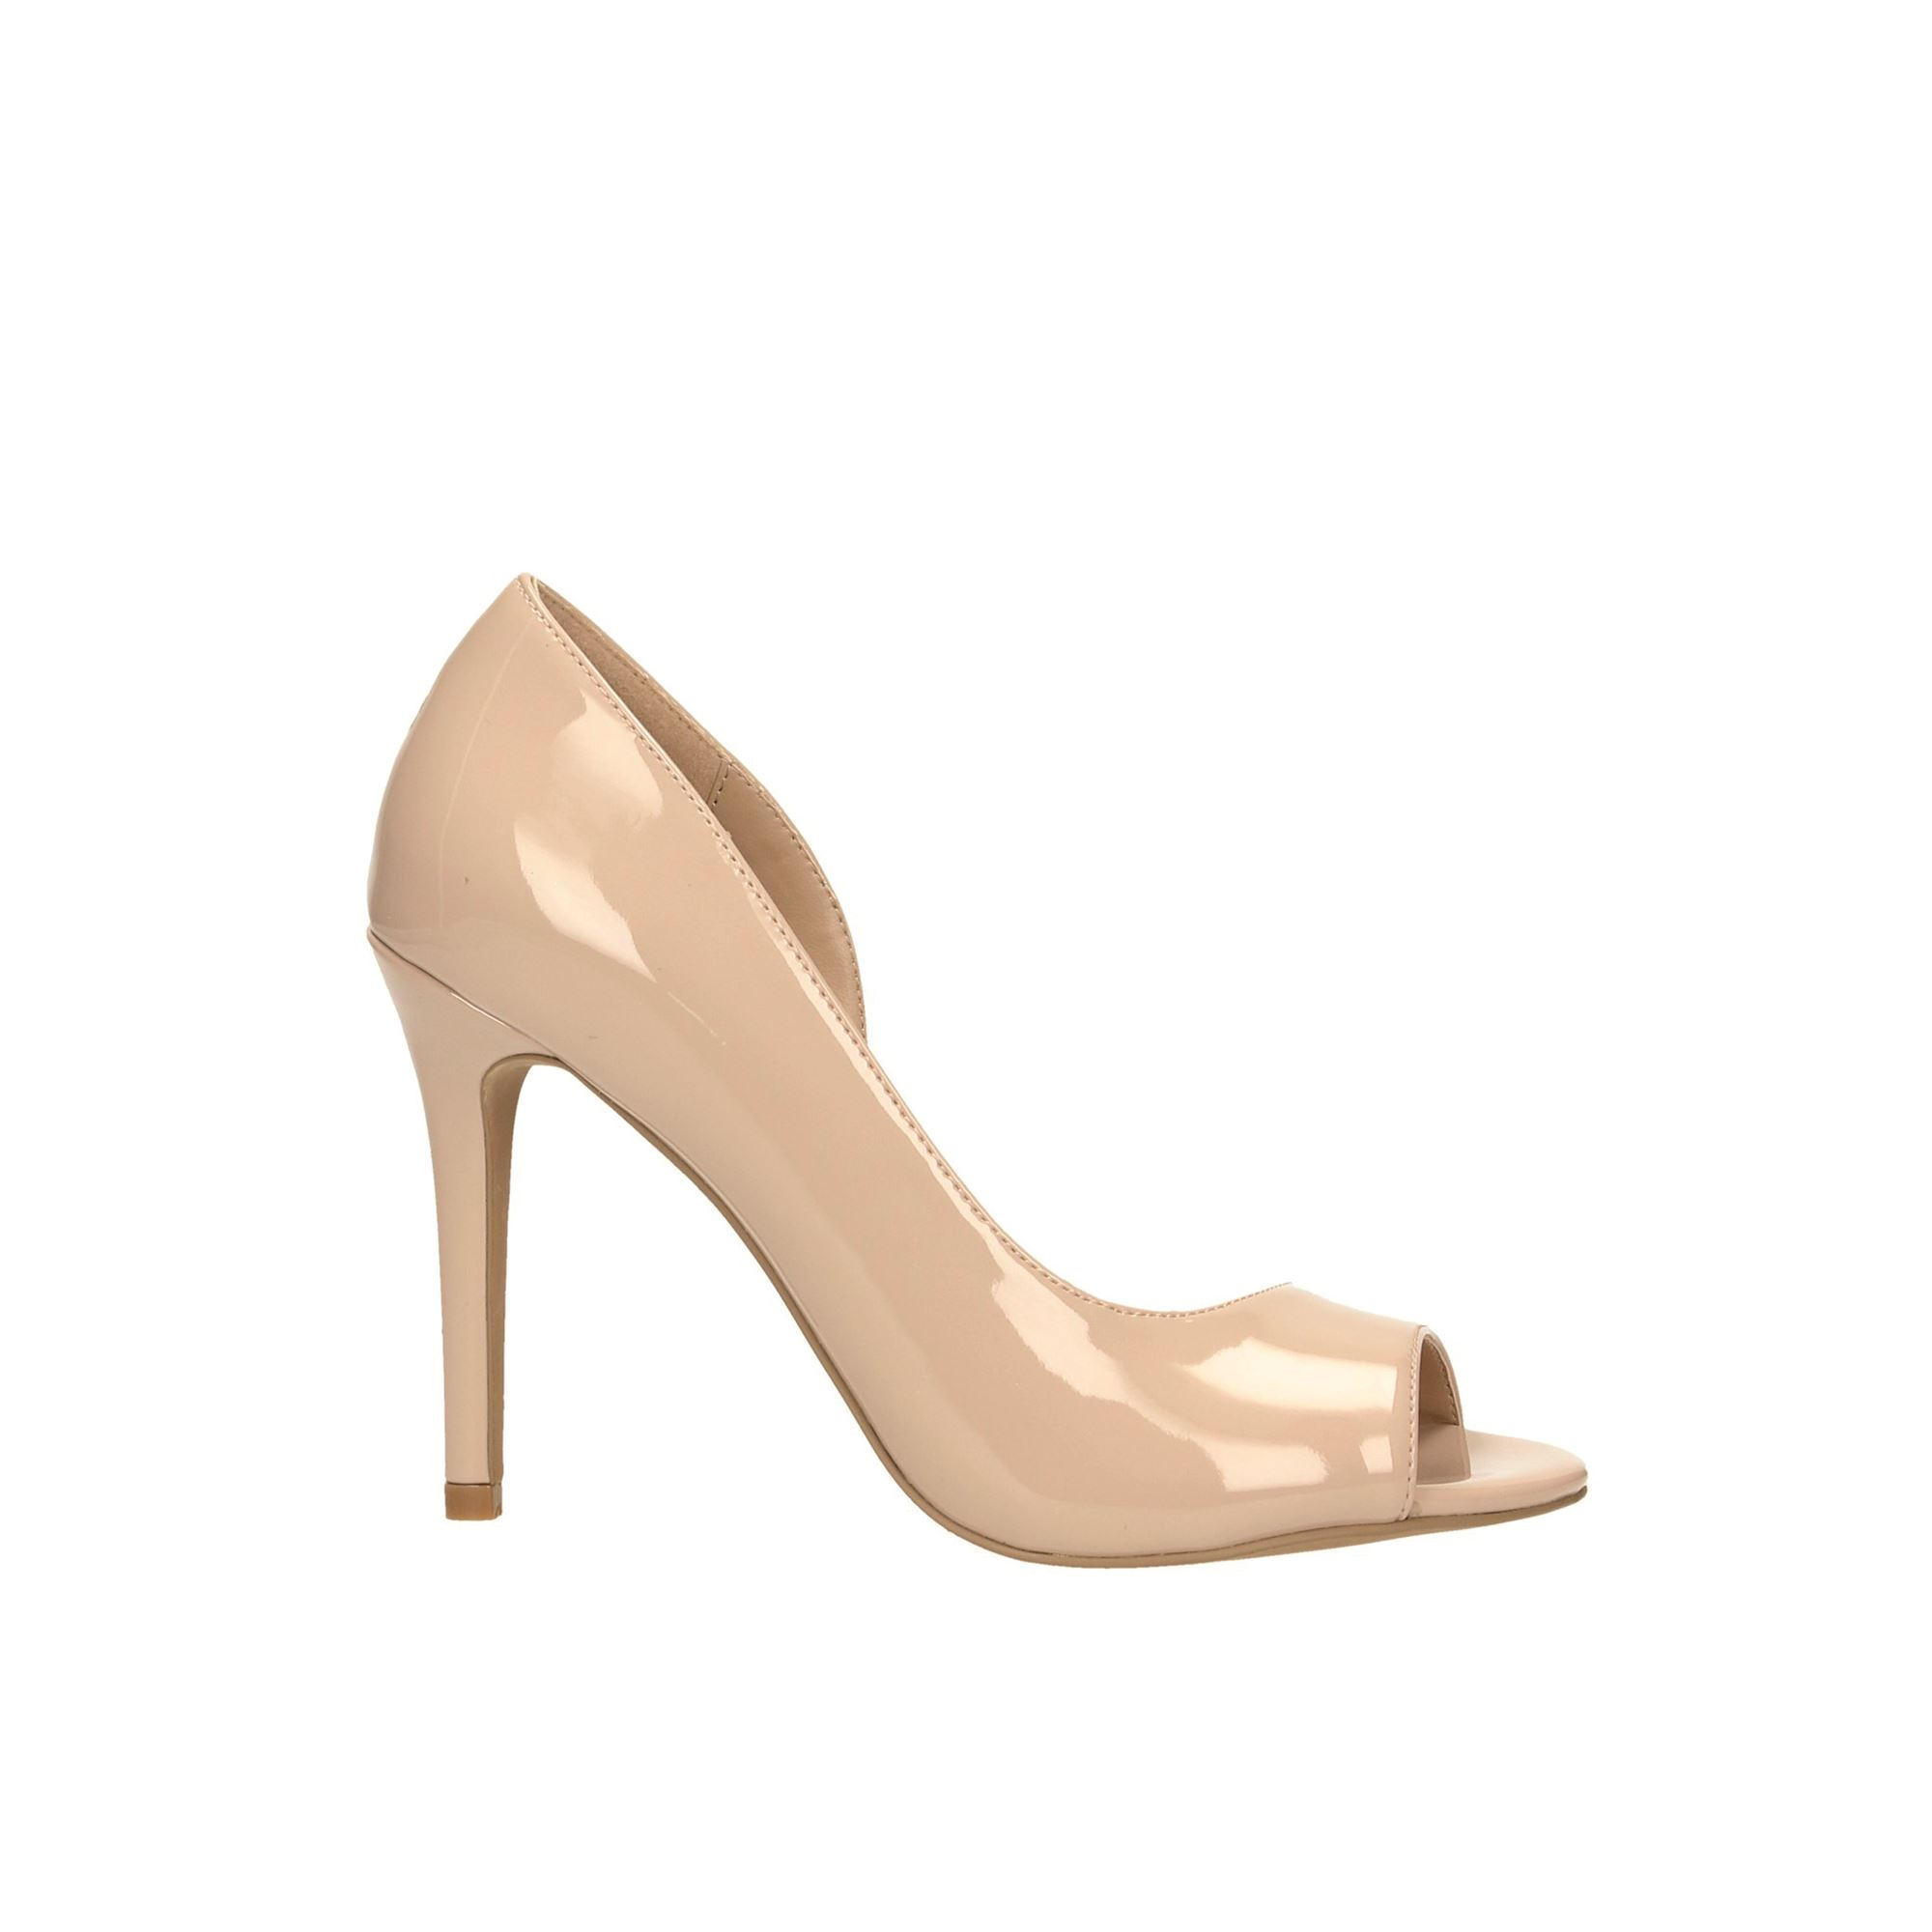 Tata Italia Shoes Woman Décolleté Beige 9331L-34